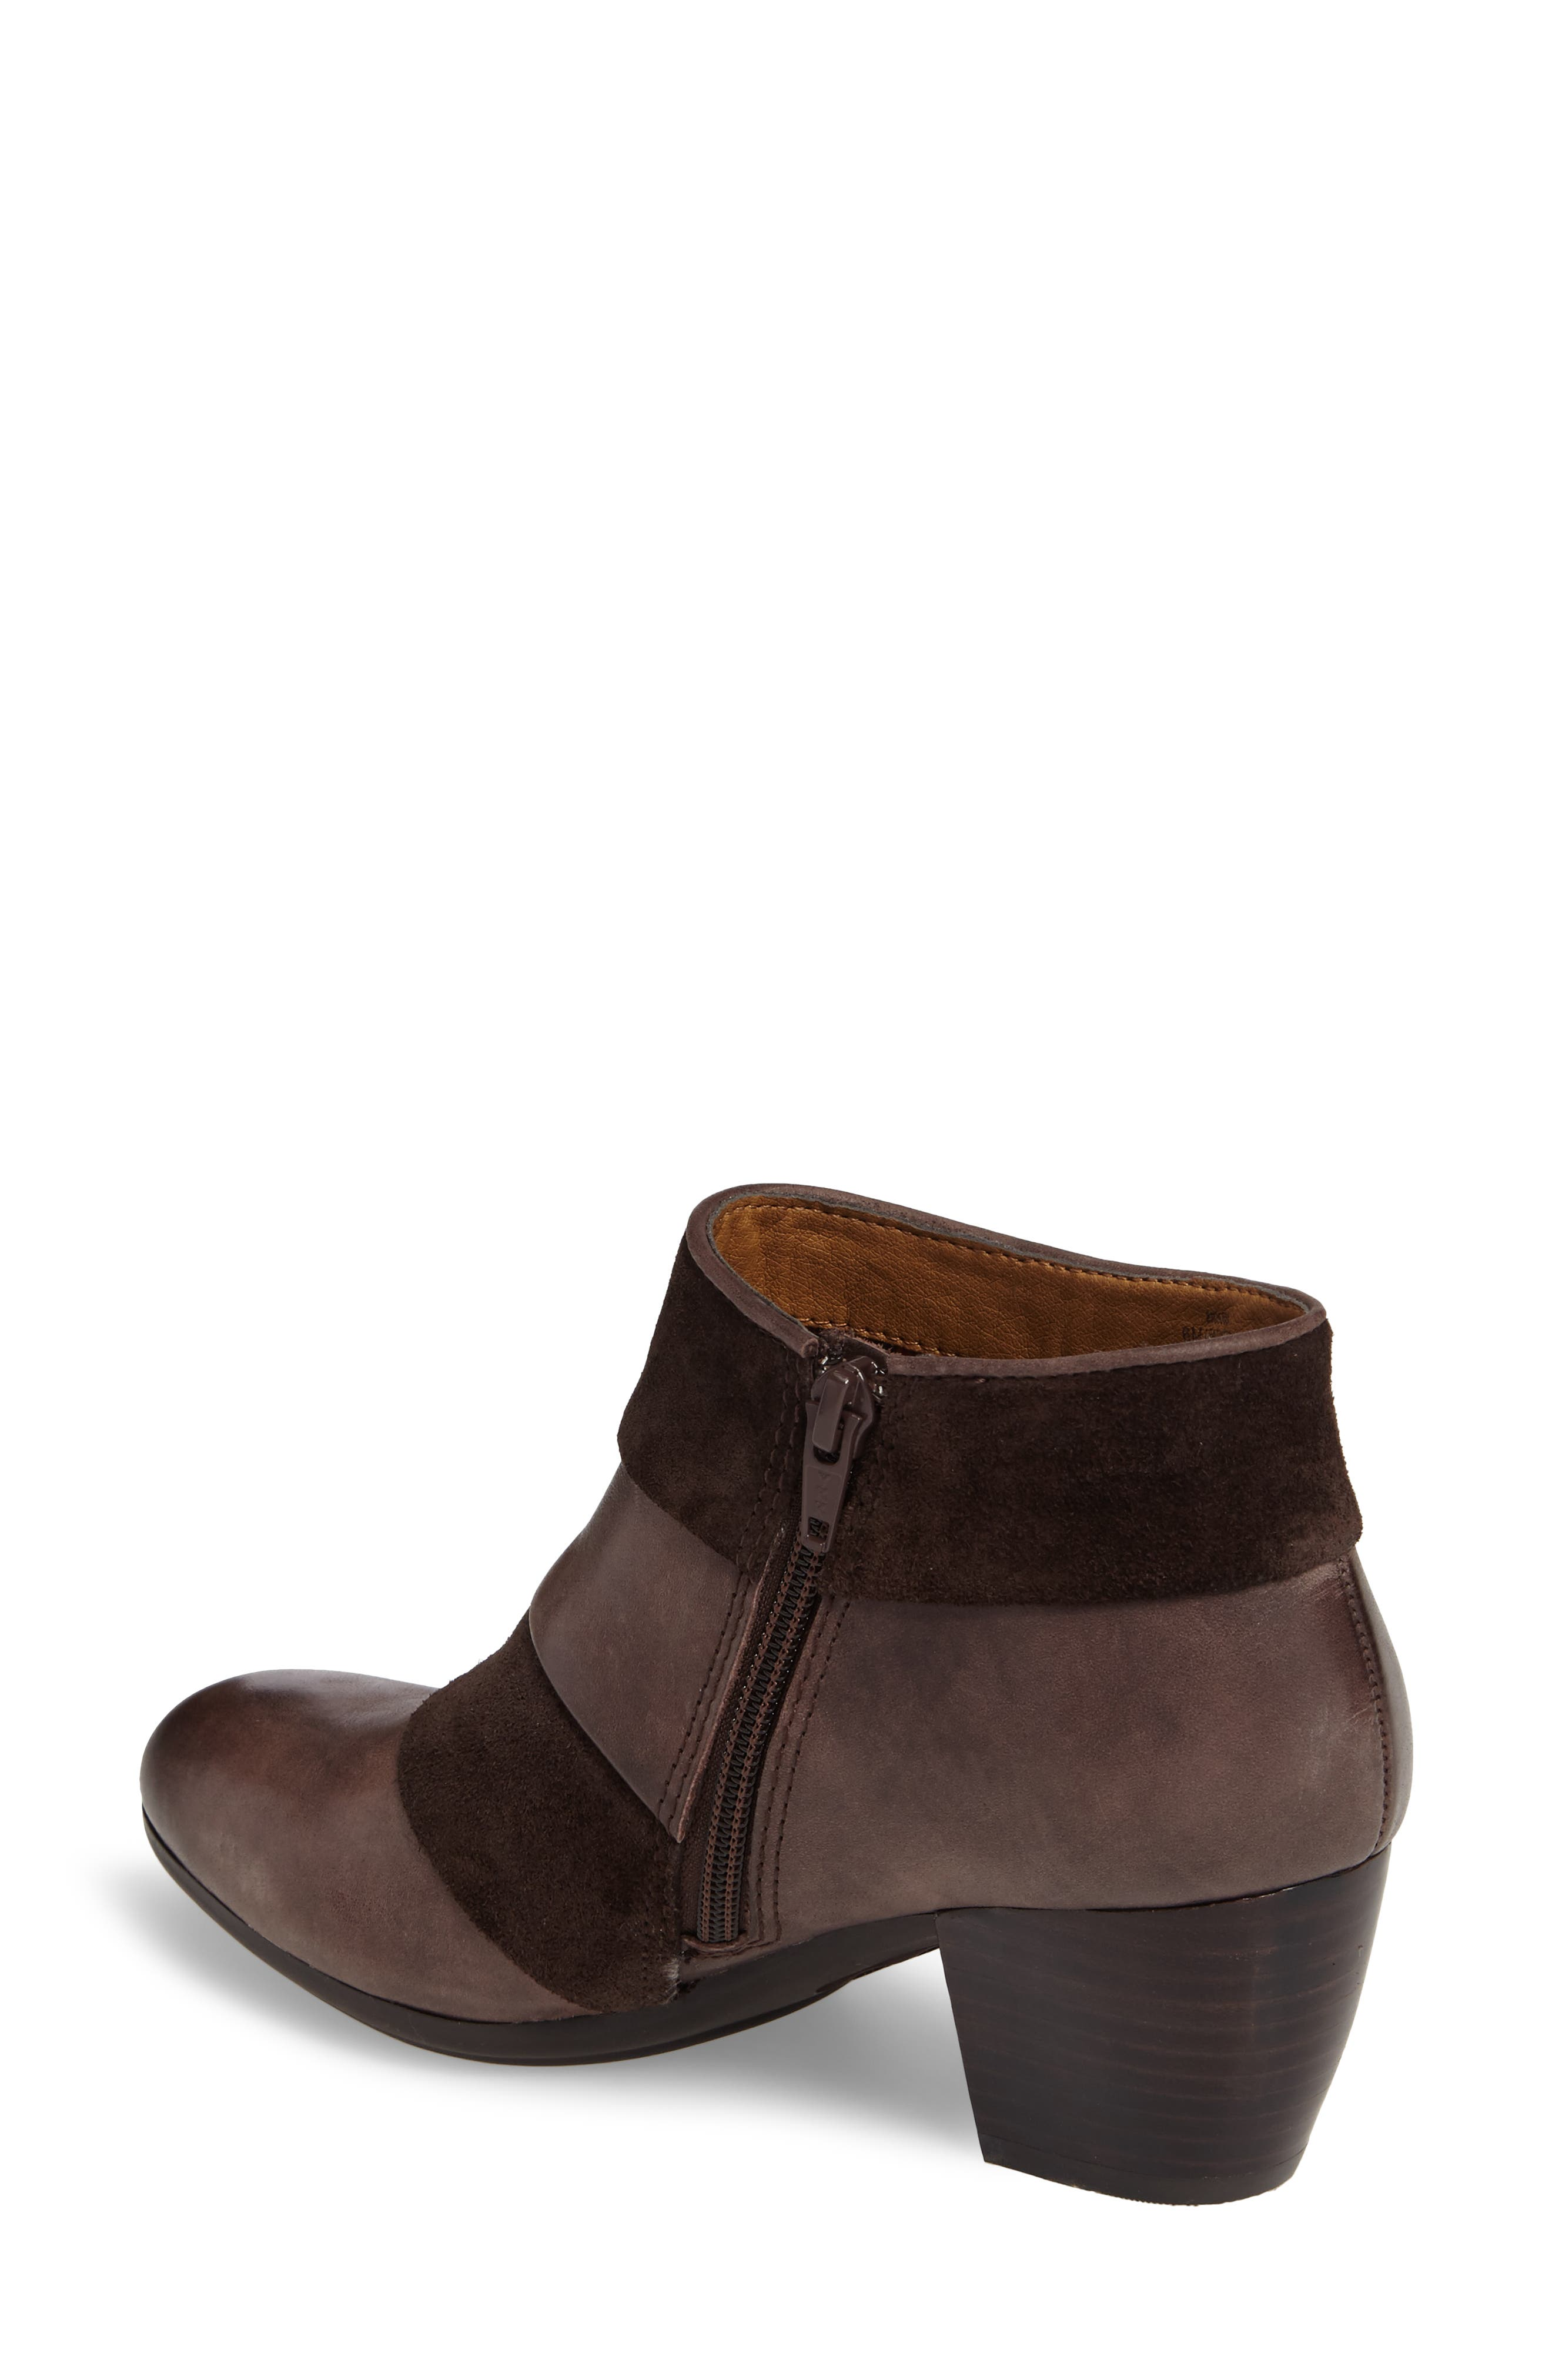 Alternate Image 2  - Comfortiva Amesbury Colorblock Bootie (Women)